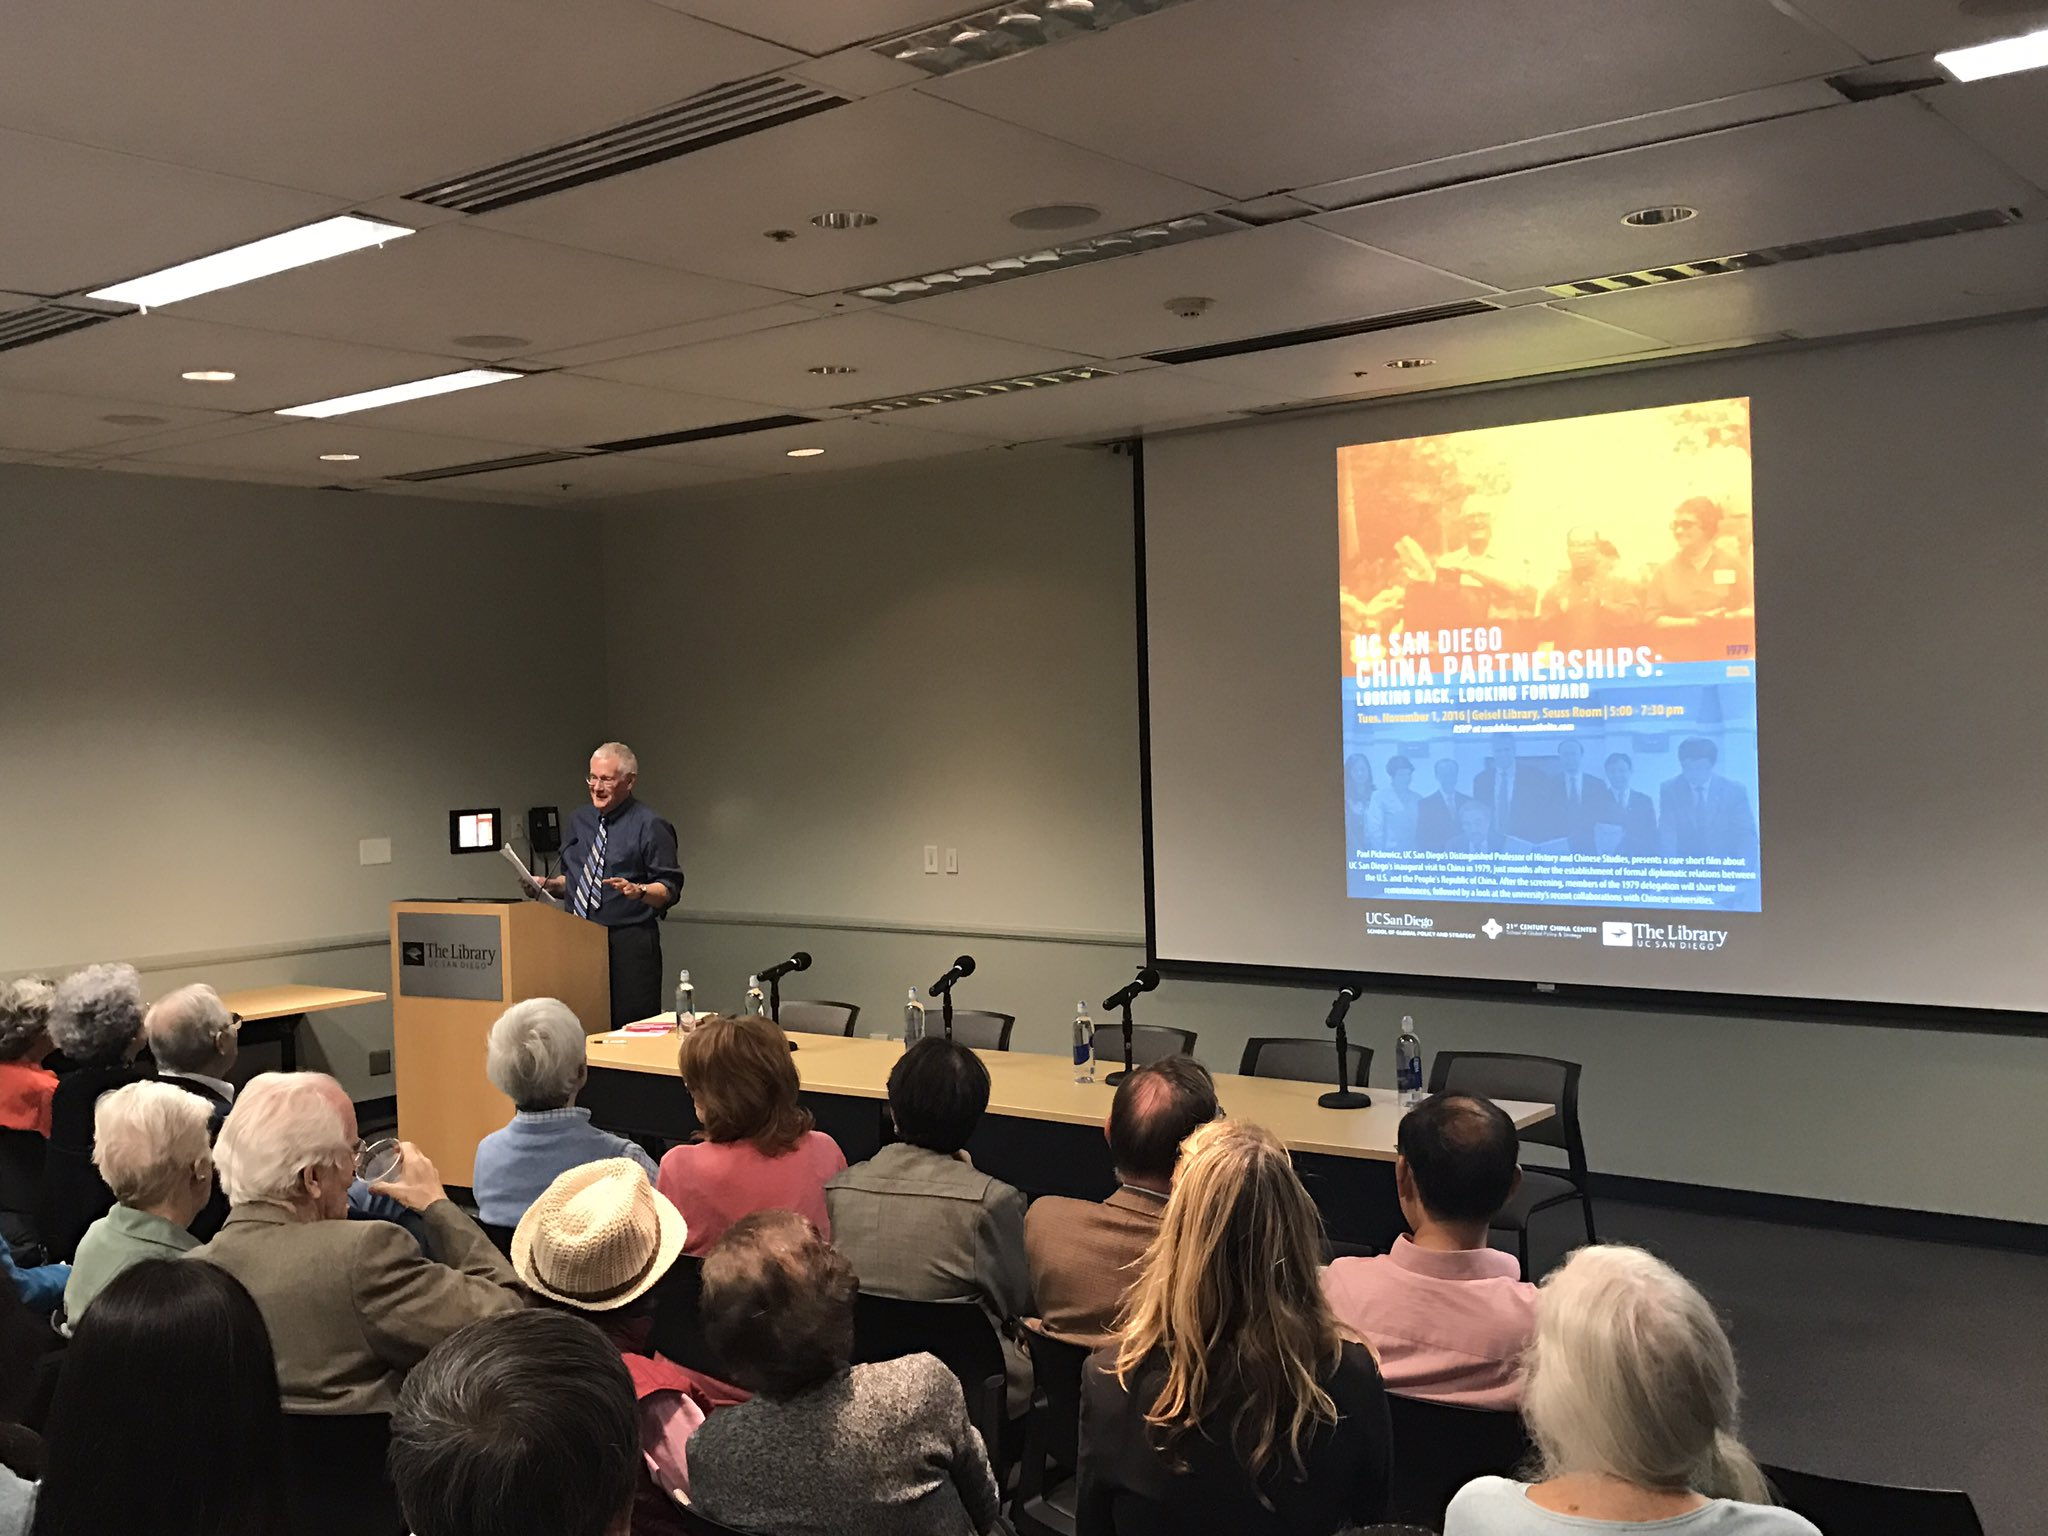 Way fun night @ucsdlibrary with @21CenturyChina watching a pretty hilarious rare film from first #ucsd visit to China... in 1979! https://t.co/Frm5bbqLrr